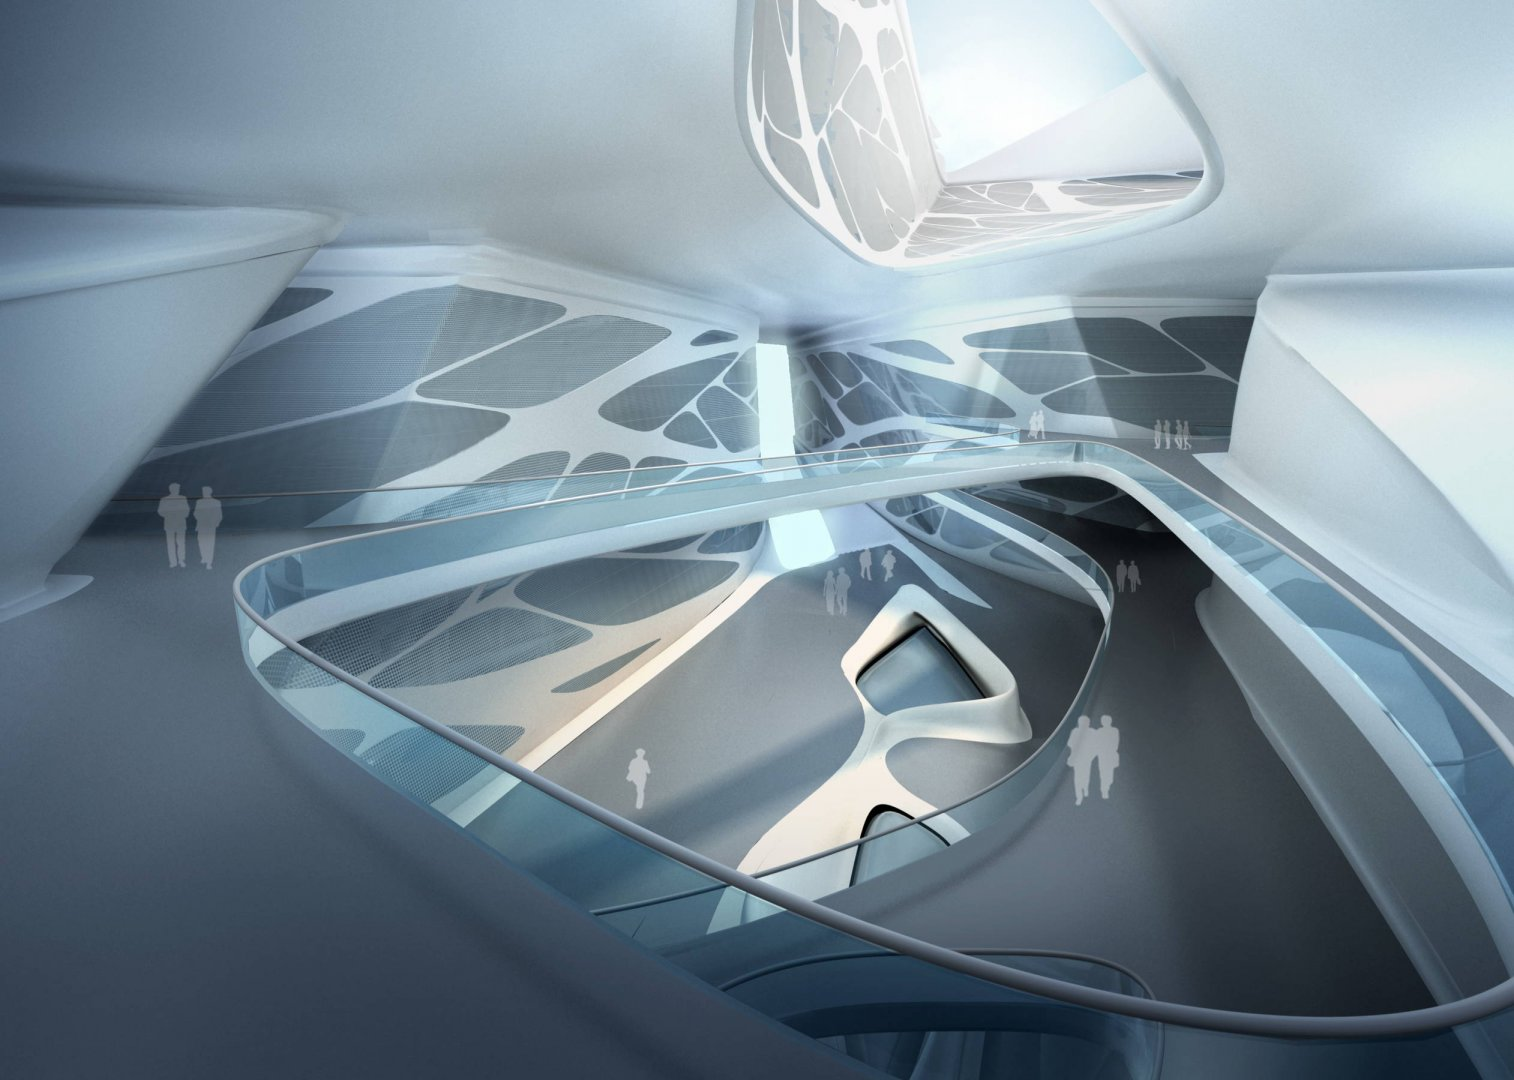 Ivana in 3d architect zaha hadid biomorphic forms for Architecture zaha hadid